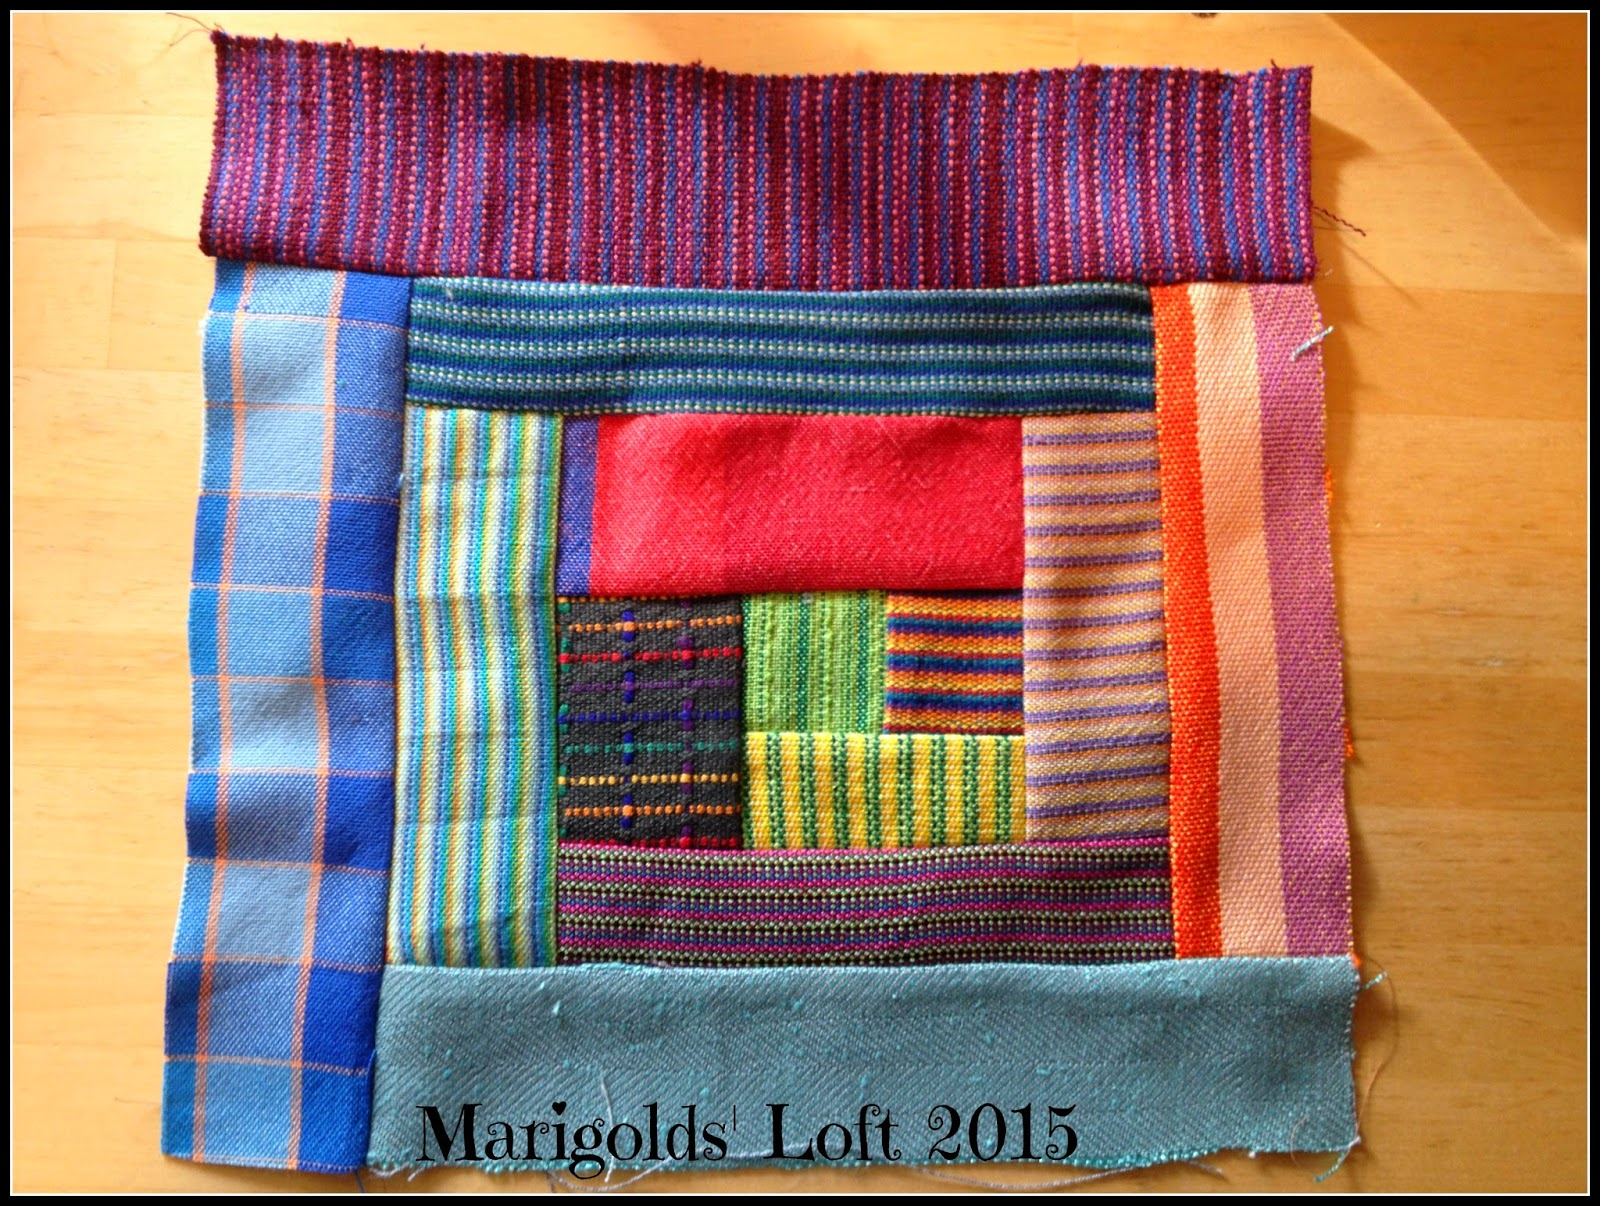 Handwoven cloth